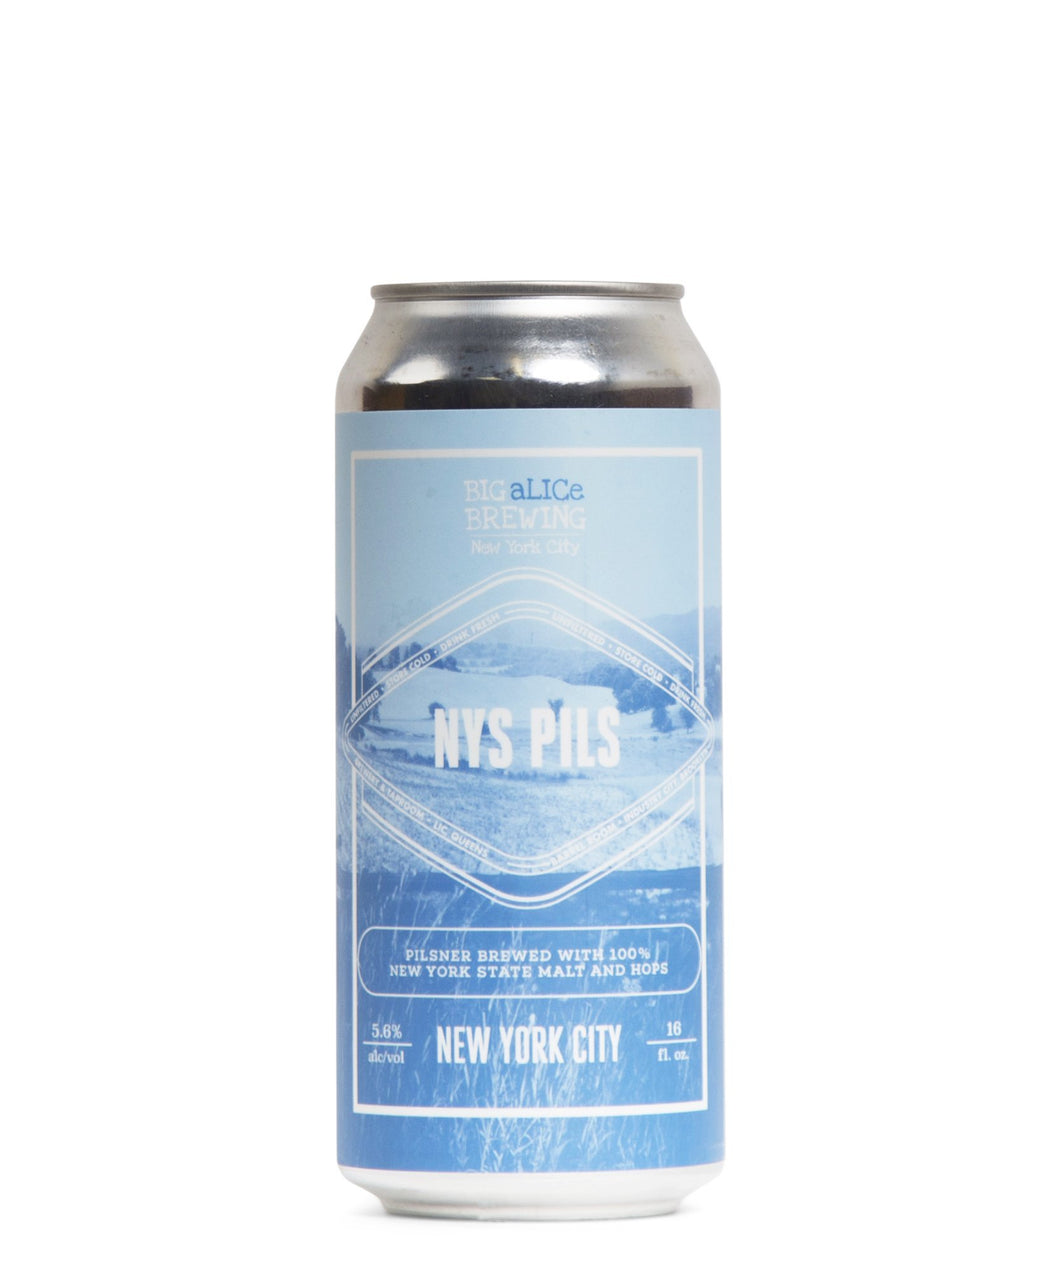 NYS Pils - Big aLICe Brewing Co Delivered By TapRm